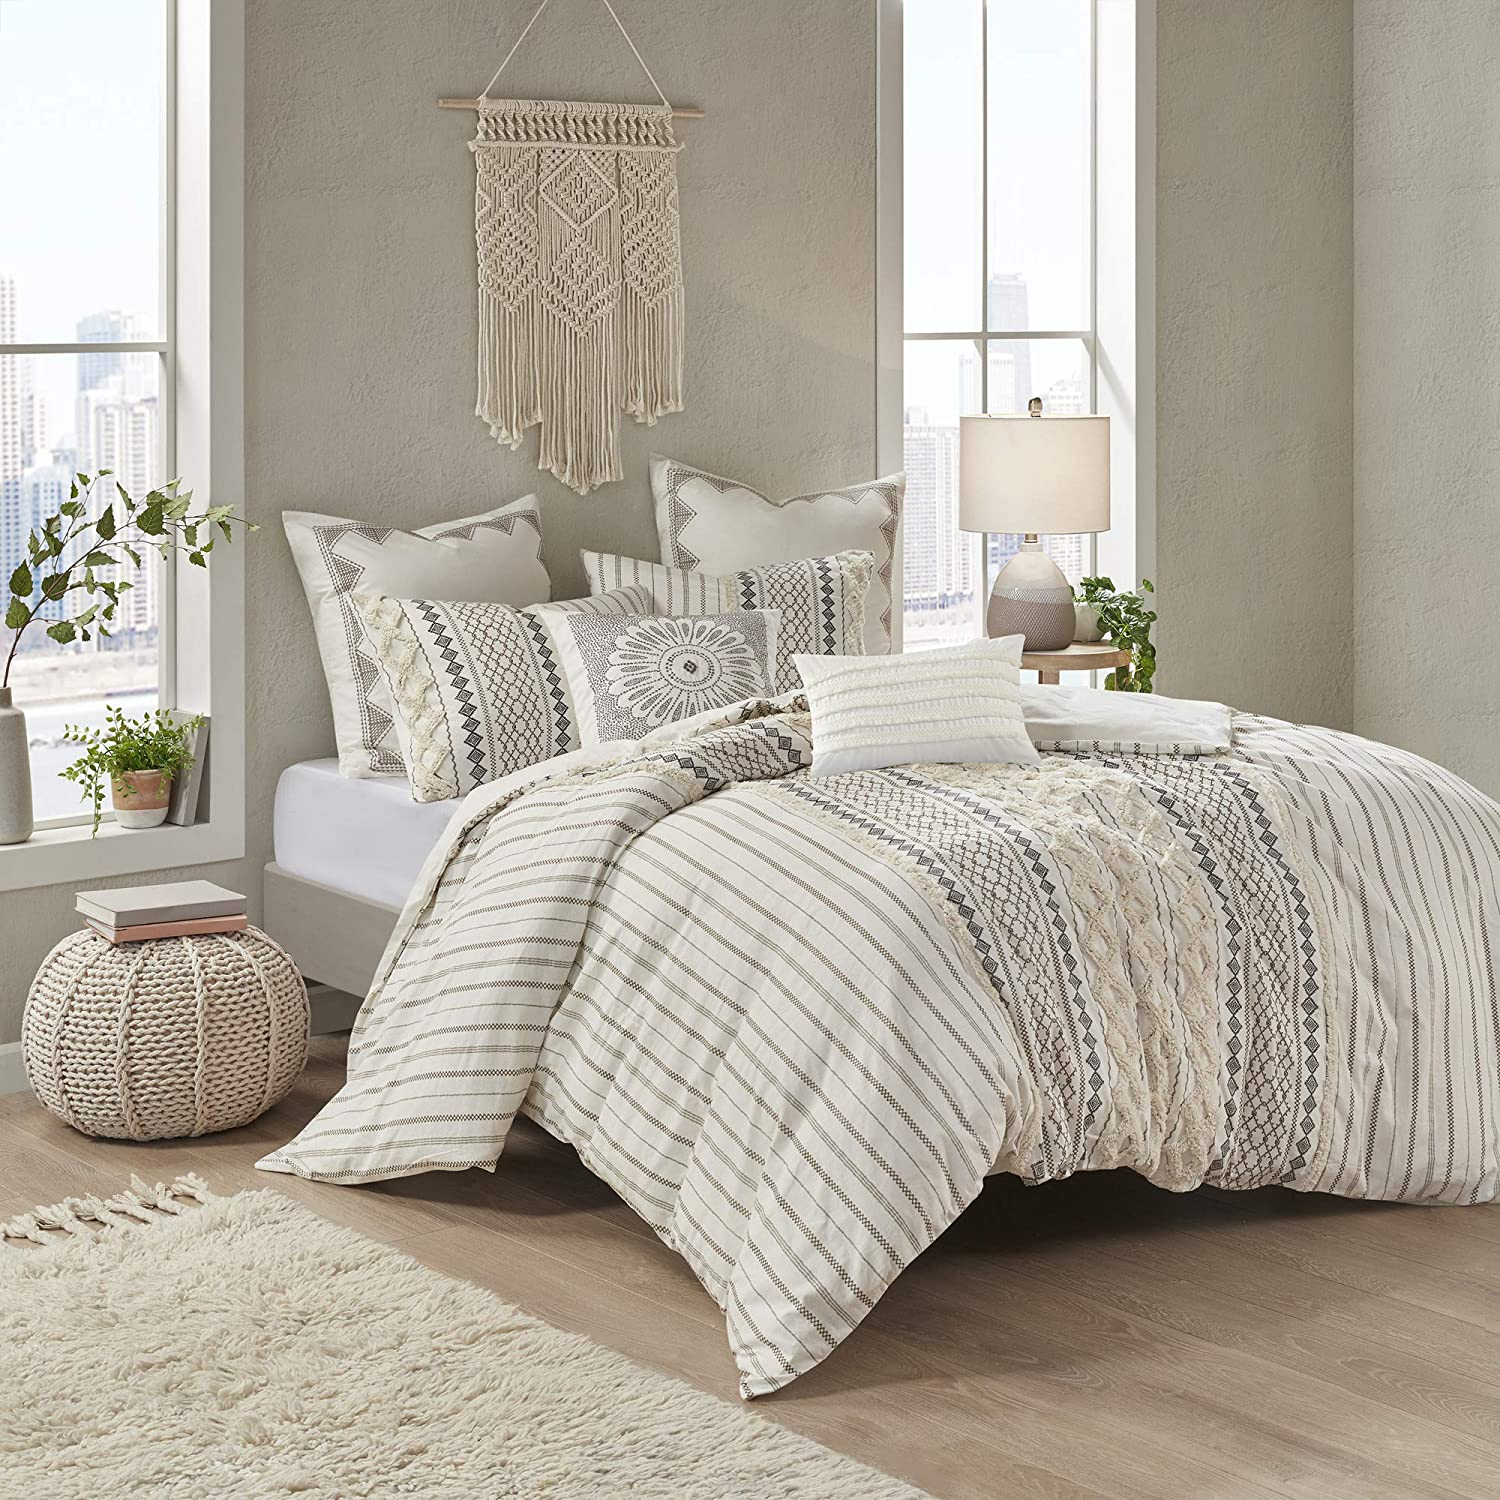 """INK+IVY 100% Cotton Comforter Mid Century Modern Design All Season Bedding Set, Matching Shams, Full/Queen(88""""x92""""), Imani, Ivory Chenille Tufted Accent 3 Piece: Home & Kitchen"""